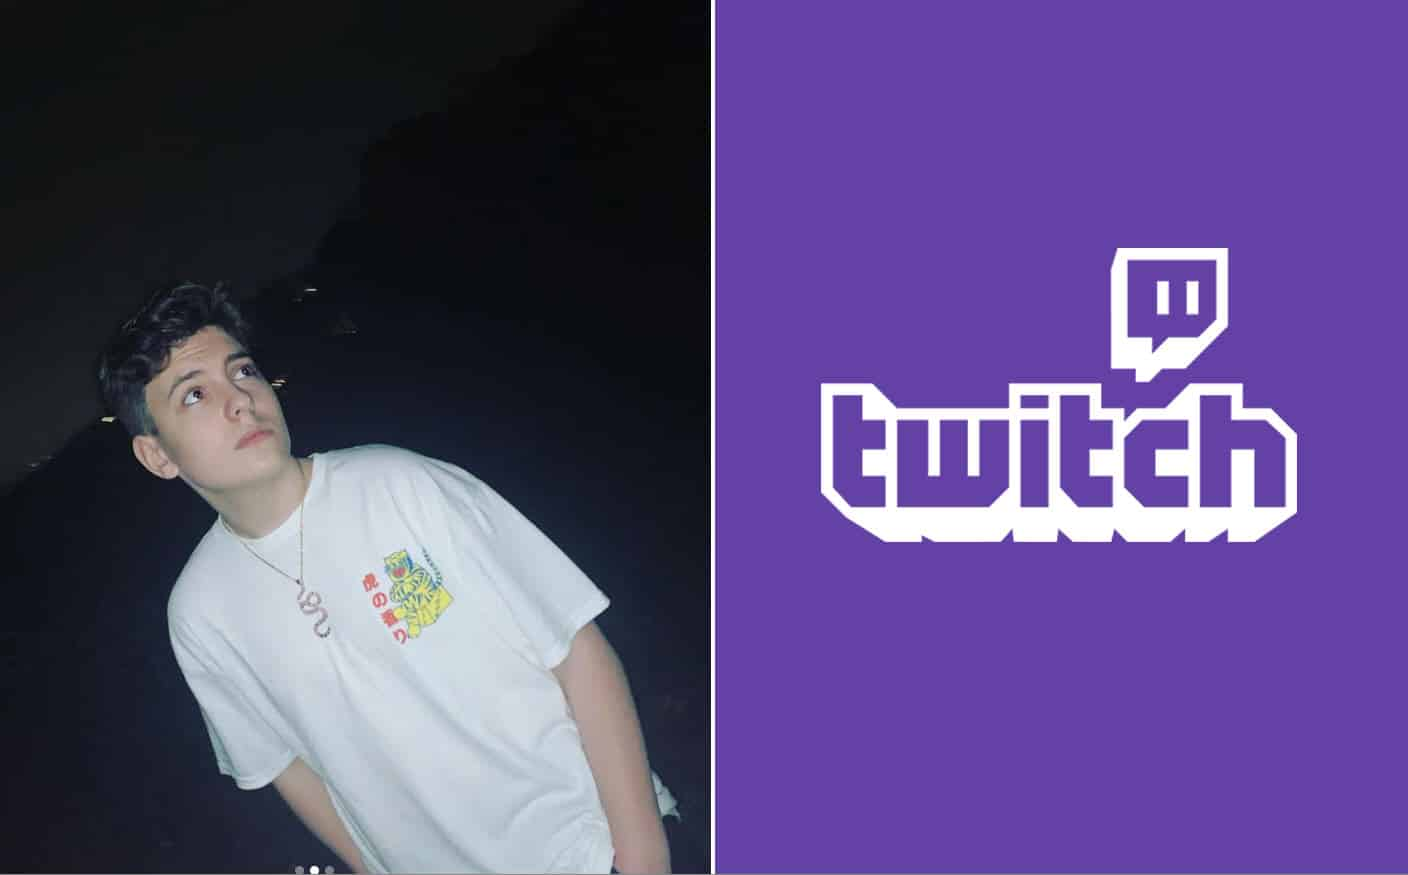 Professional Fortnite Player Clix Banned From Twitch